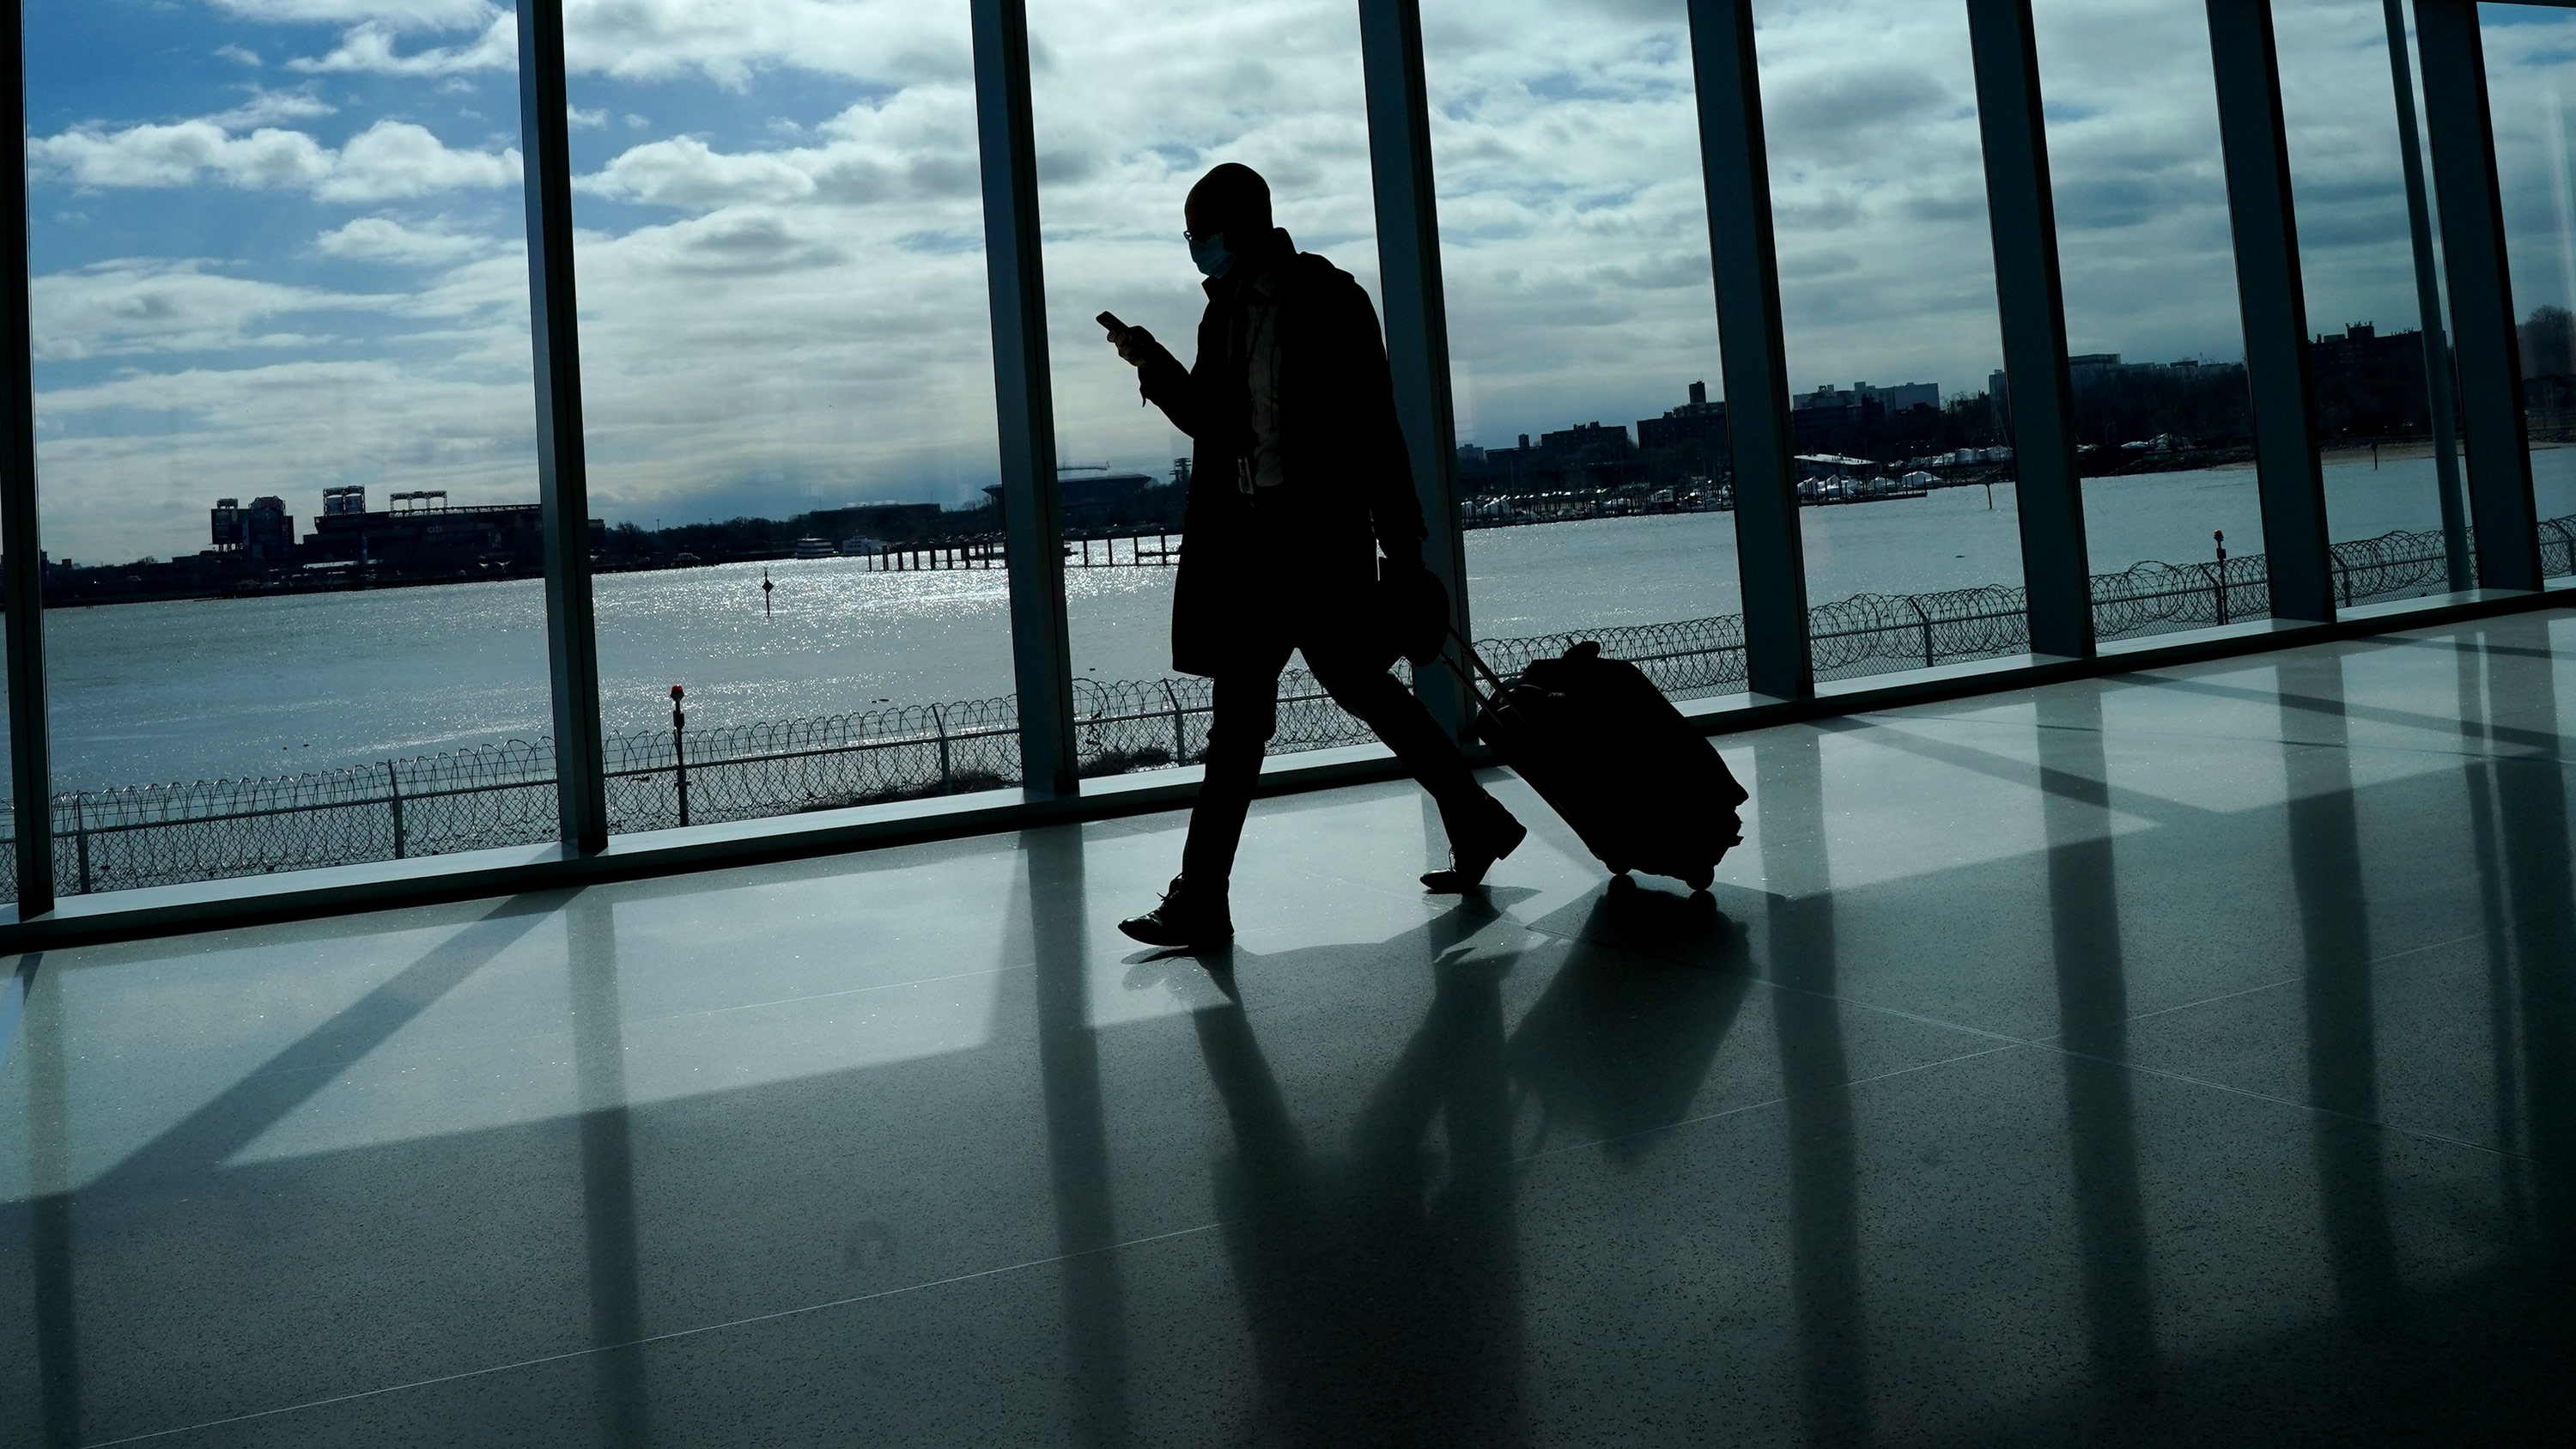 A person walks through LaGuardia Airport in New York, on March 6.